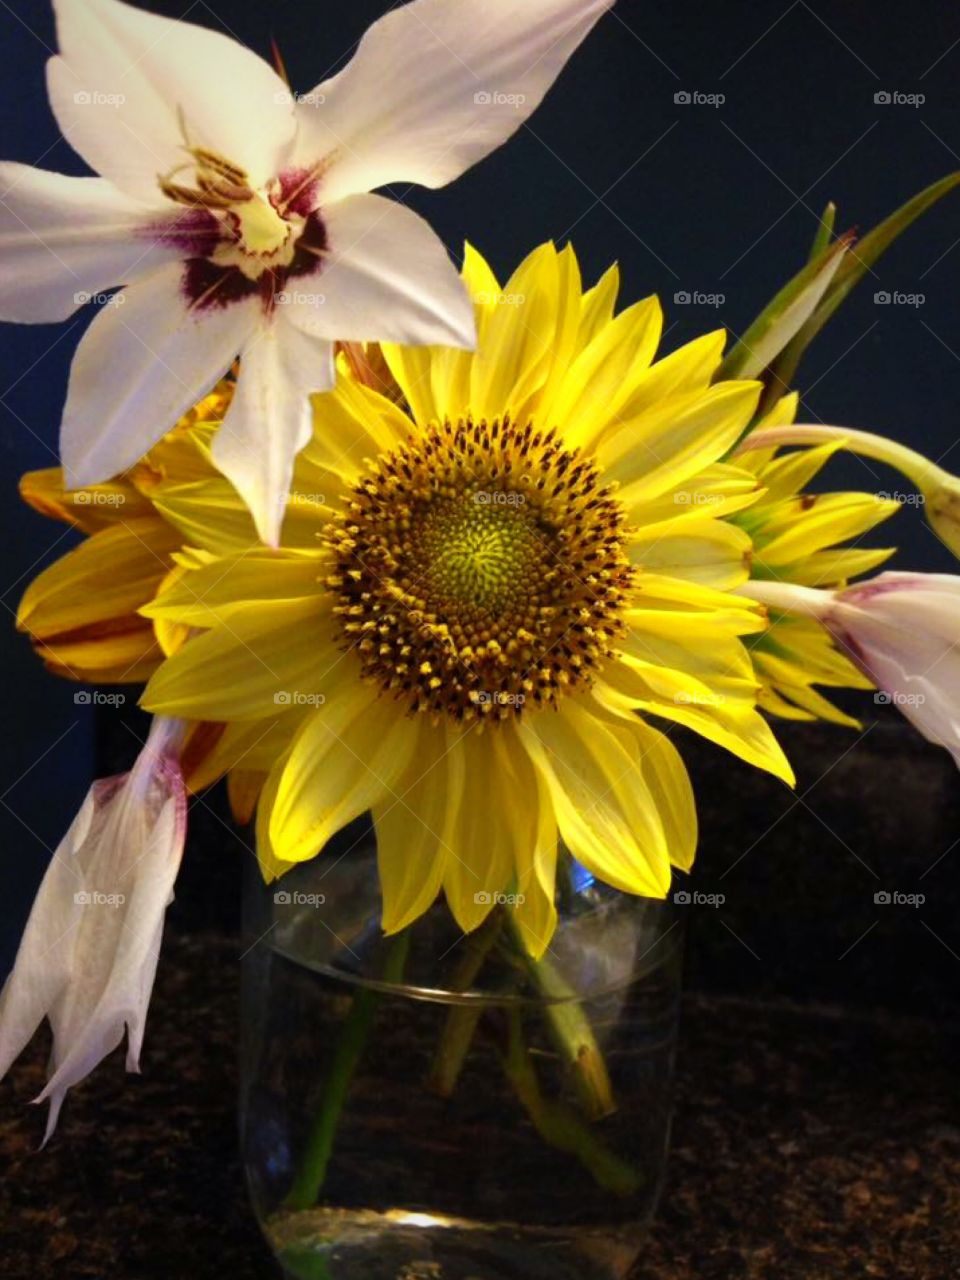 Sunflowers and white orchid gladiolus arranged in a mason jar. Navy blue background.